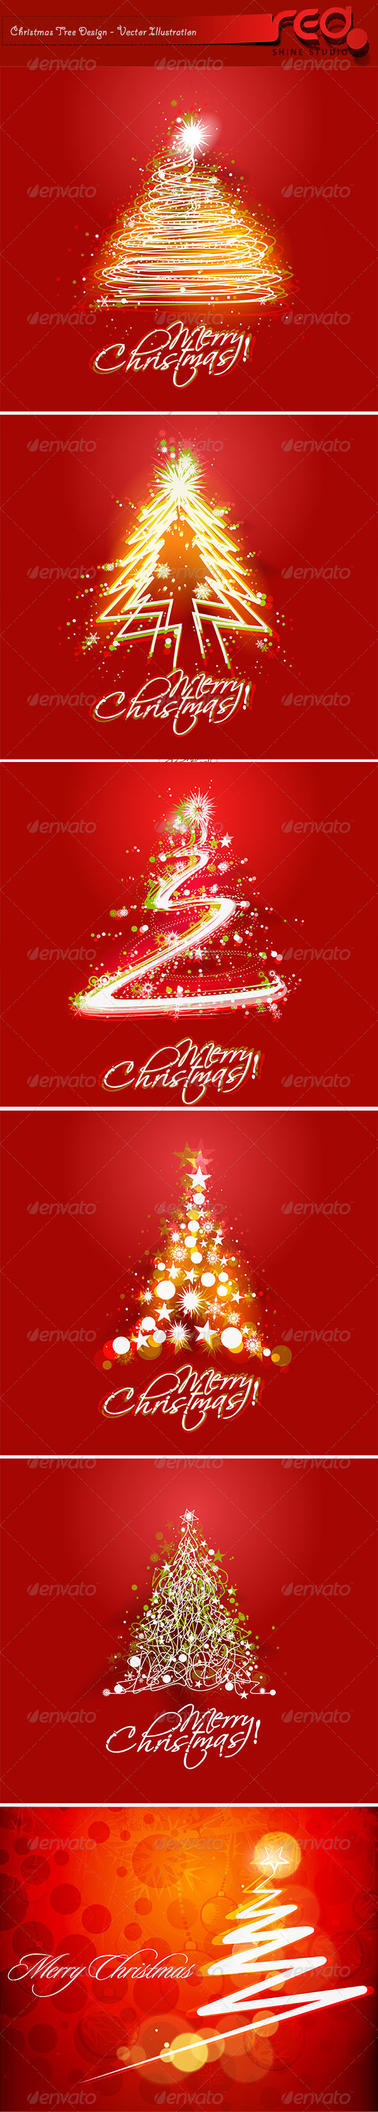 Christmas Tree Background's by Redshinestudio